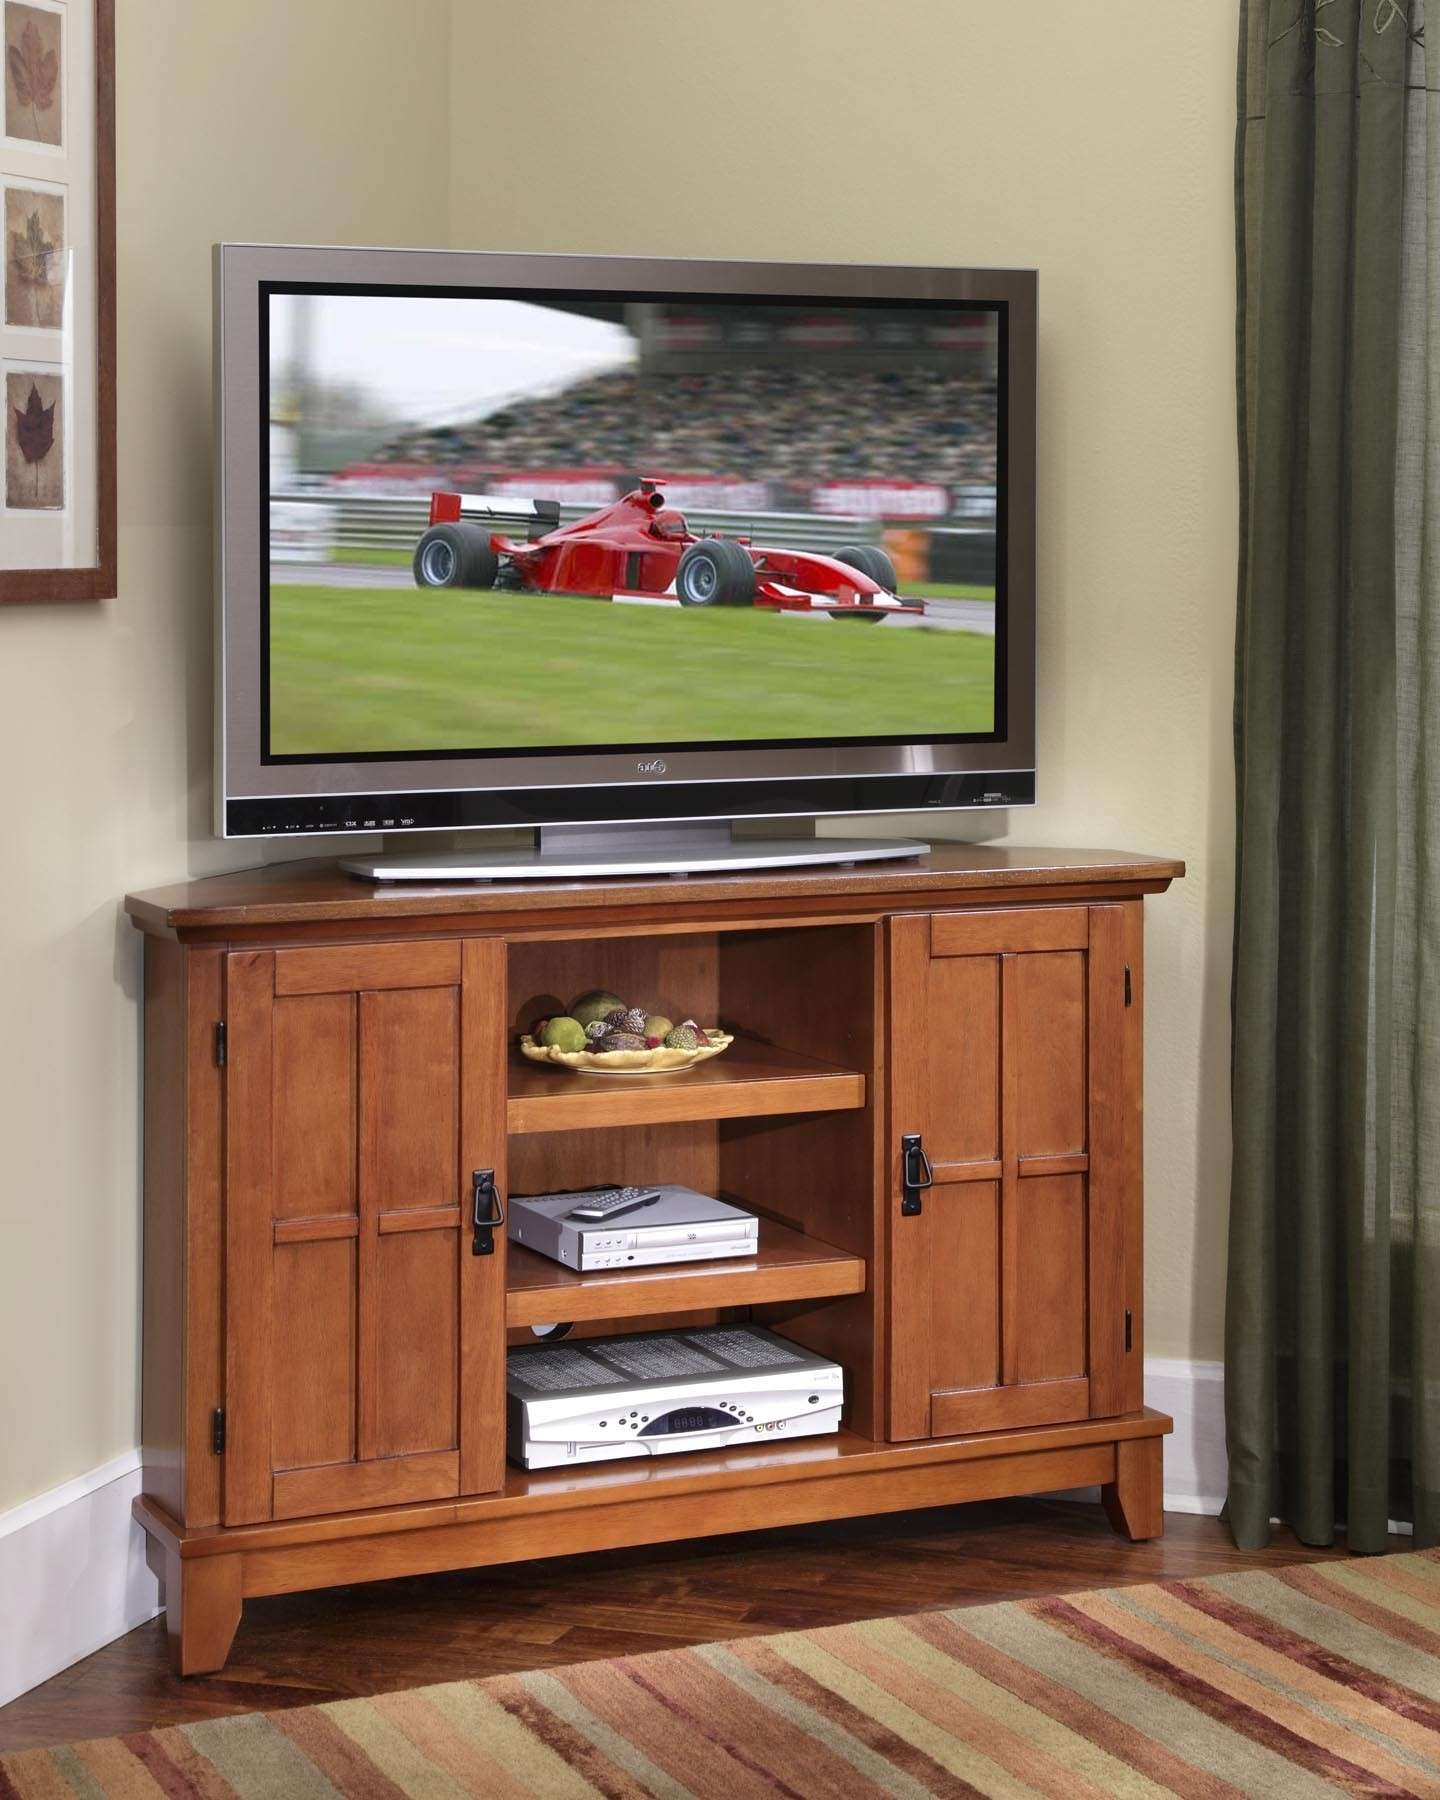 Simple Corner Tv Stand Furniture Set Trends Also With Hutch Images Within Mahogany Corner Tv Stands (View 12 of 15)